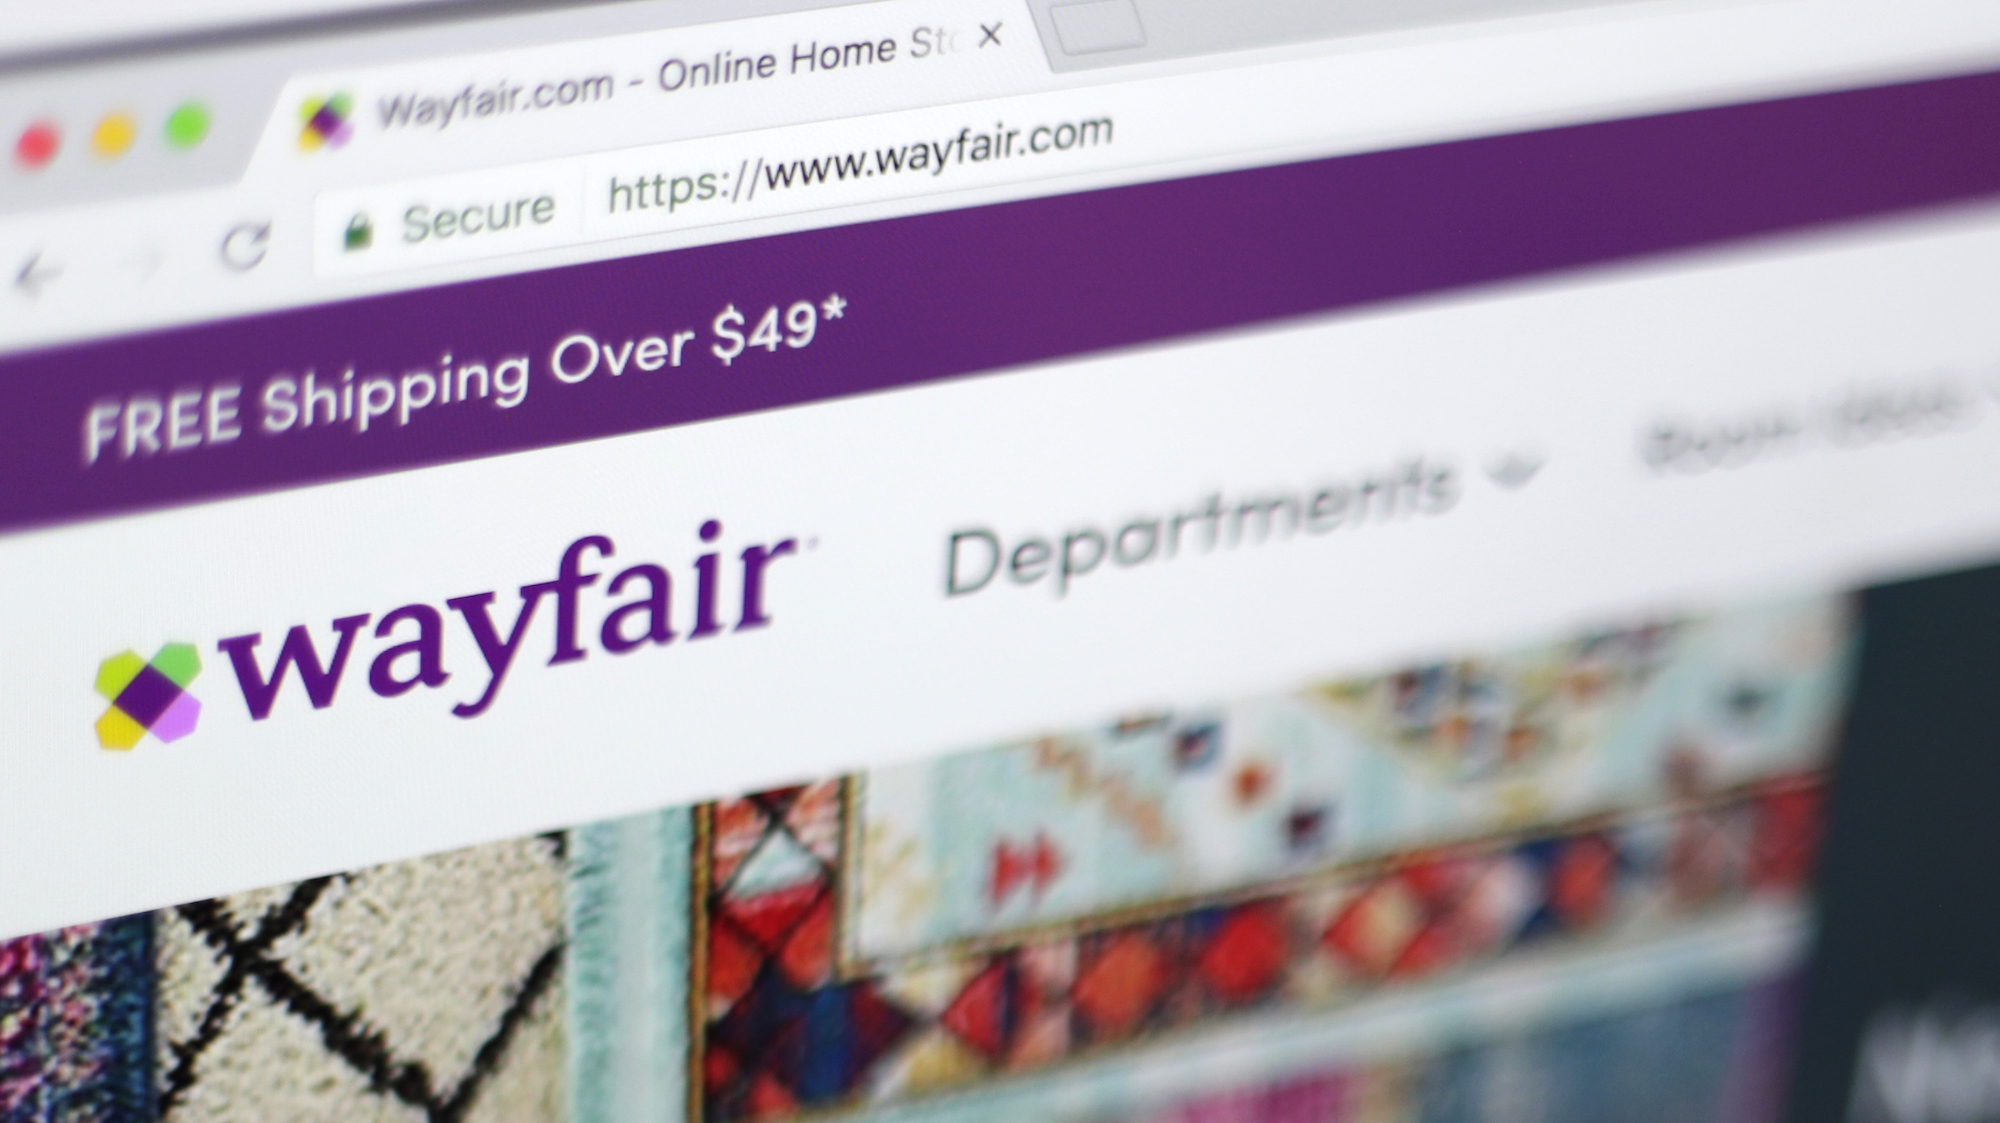 Supreme Court Decides Wayfair Online Sales Tax Case